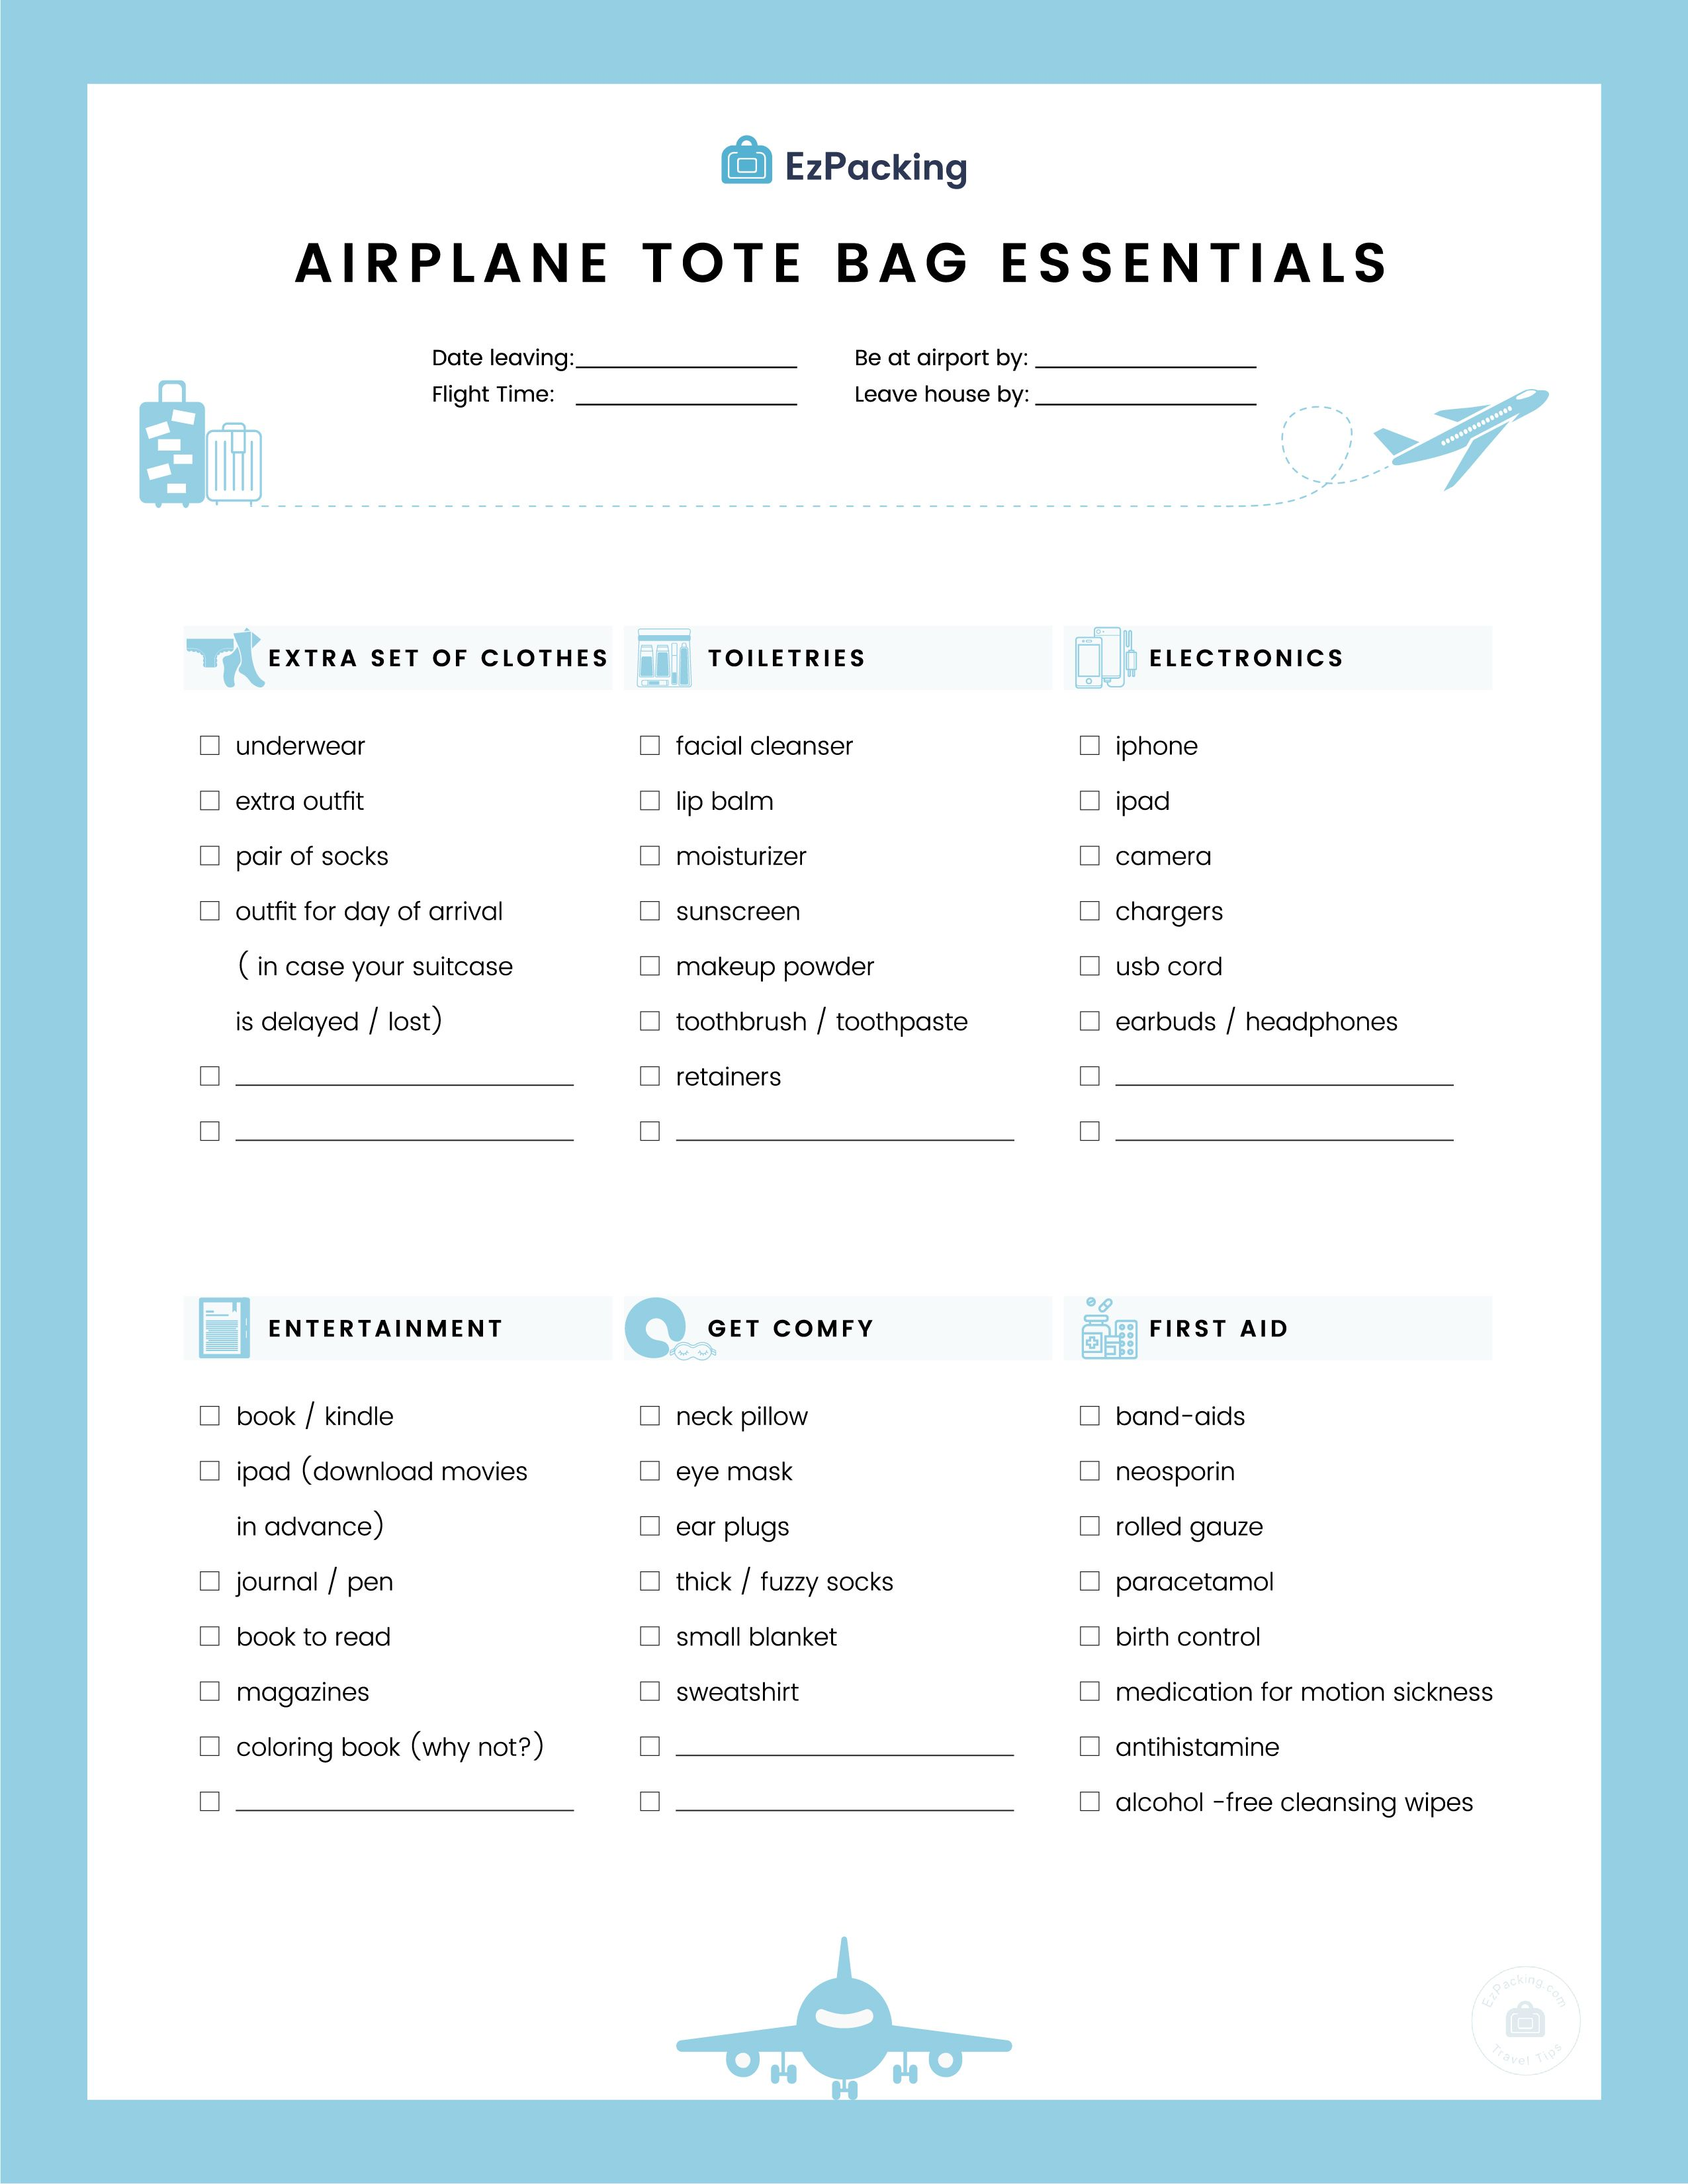 Airplane Carry On Essentials | Download our free Airplane